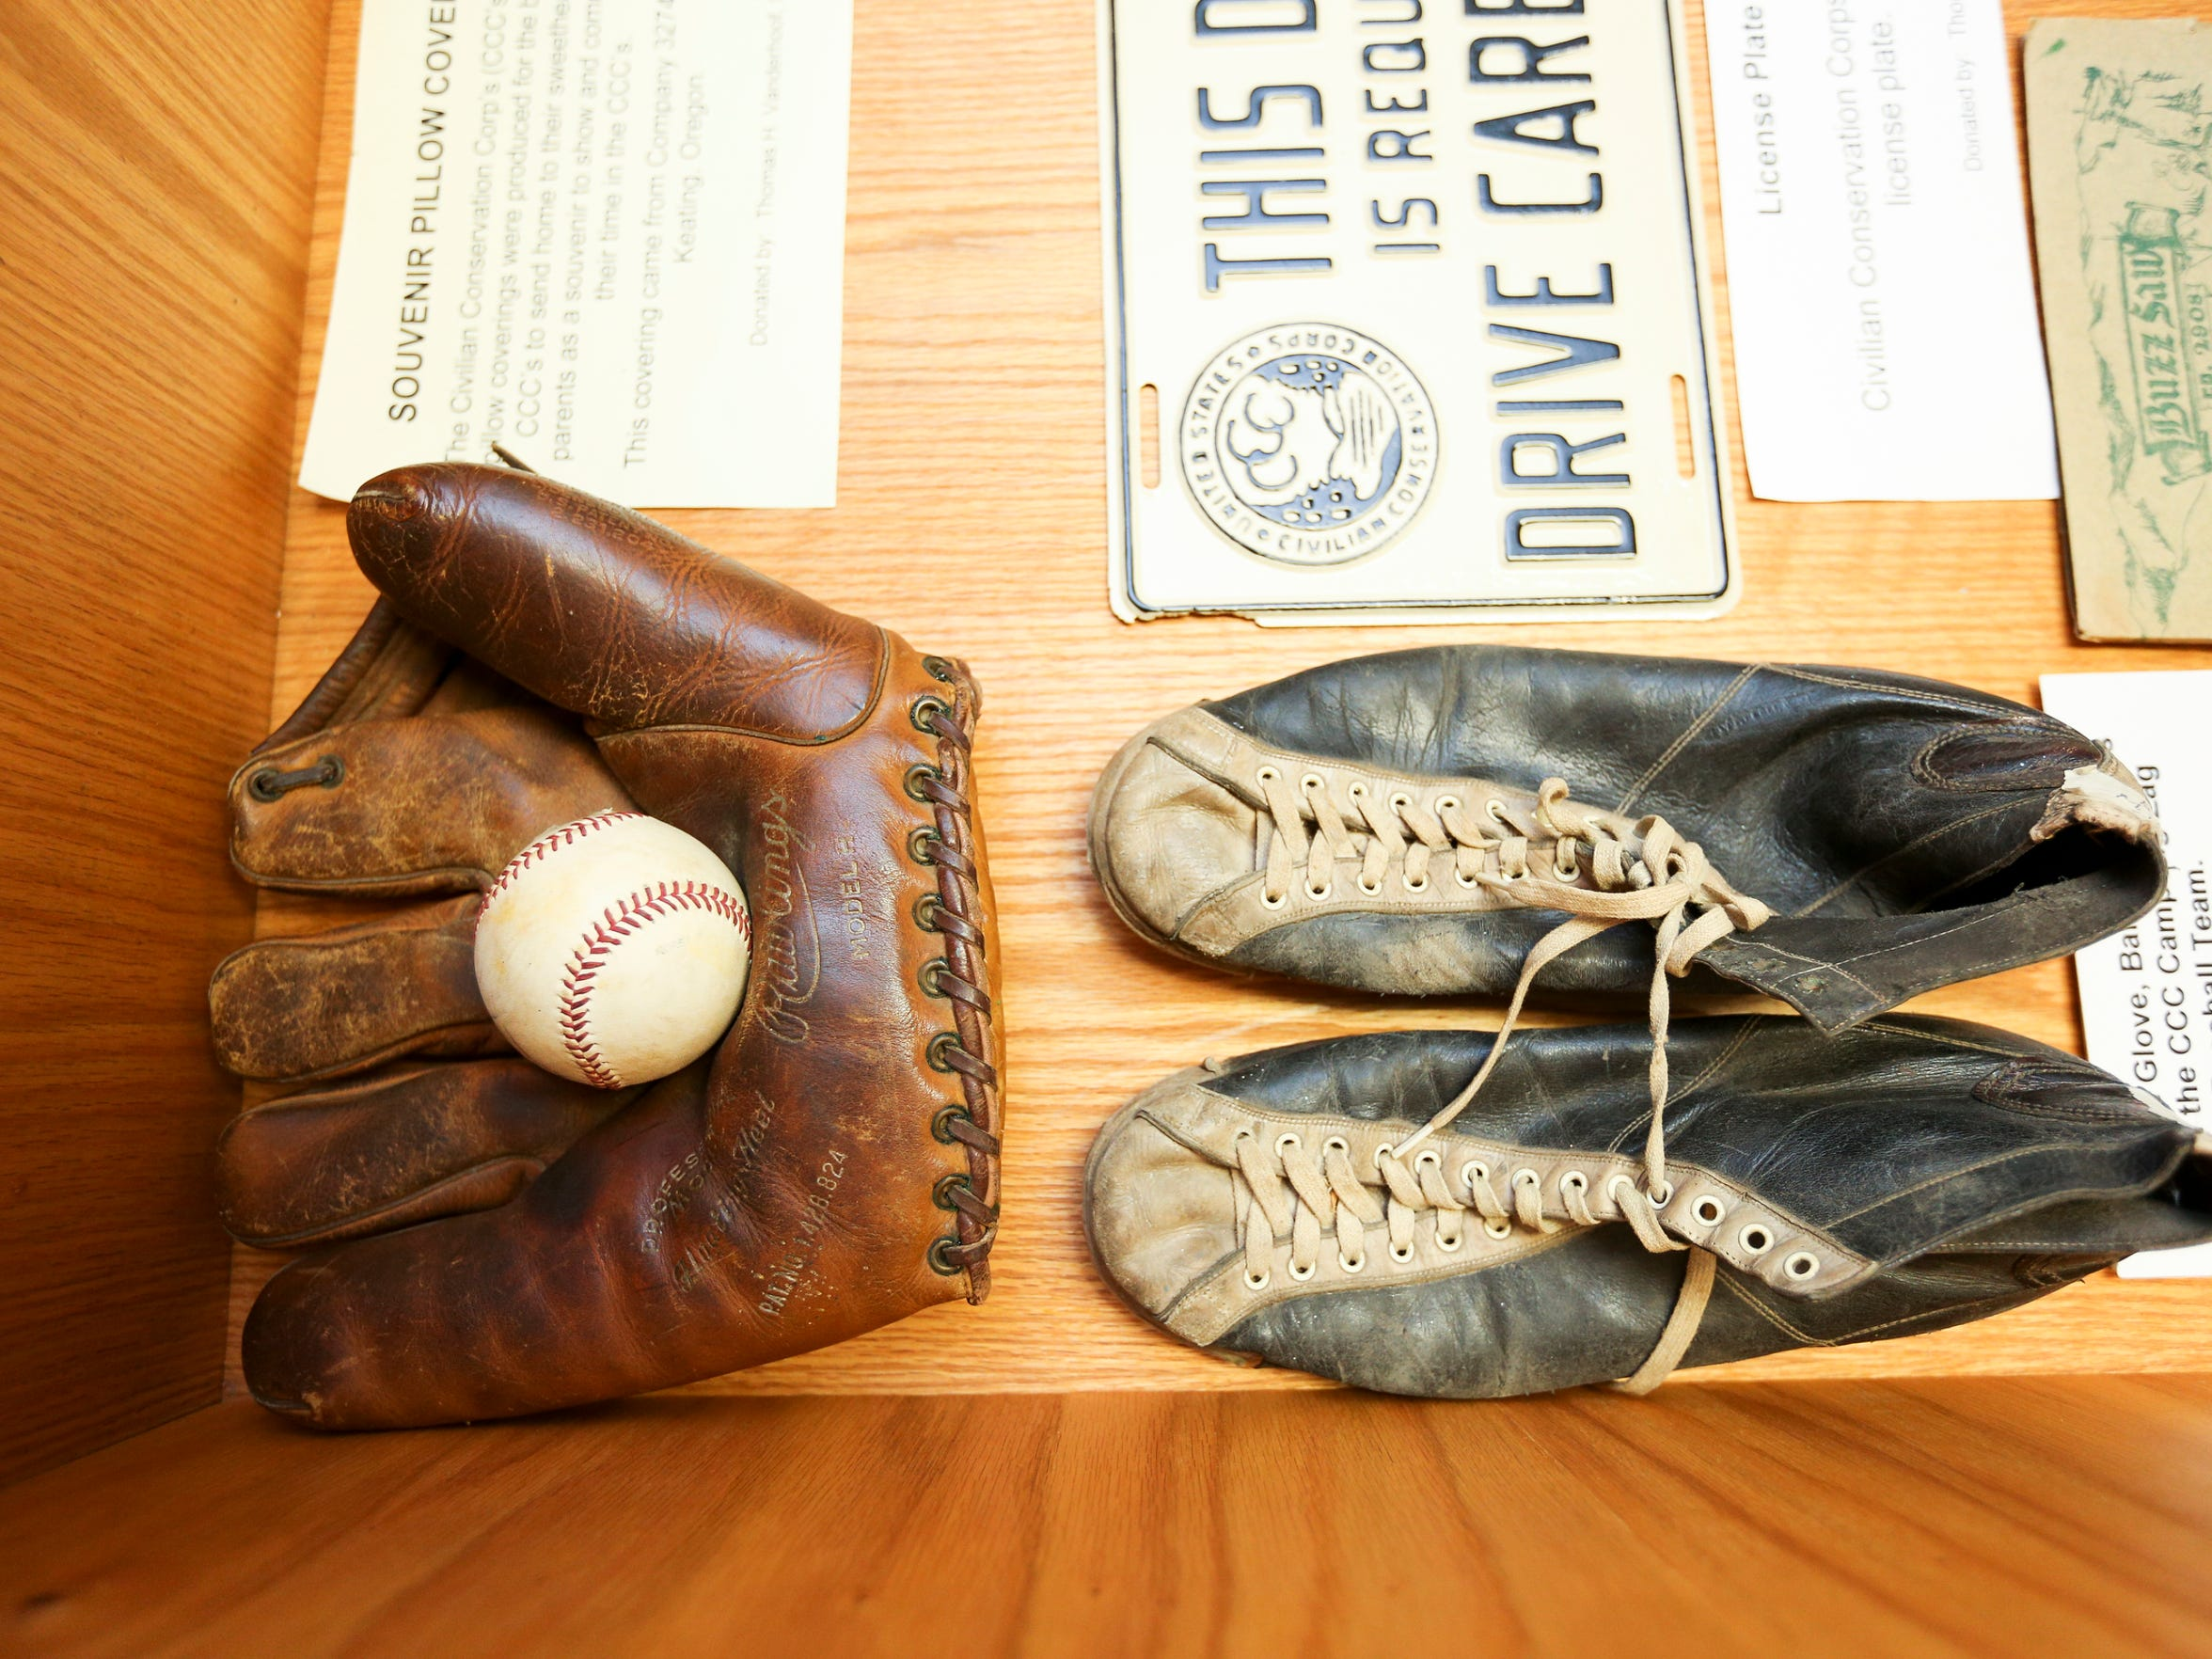 A baseball mitt and old gym shoes are some of the items